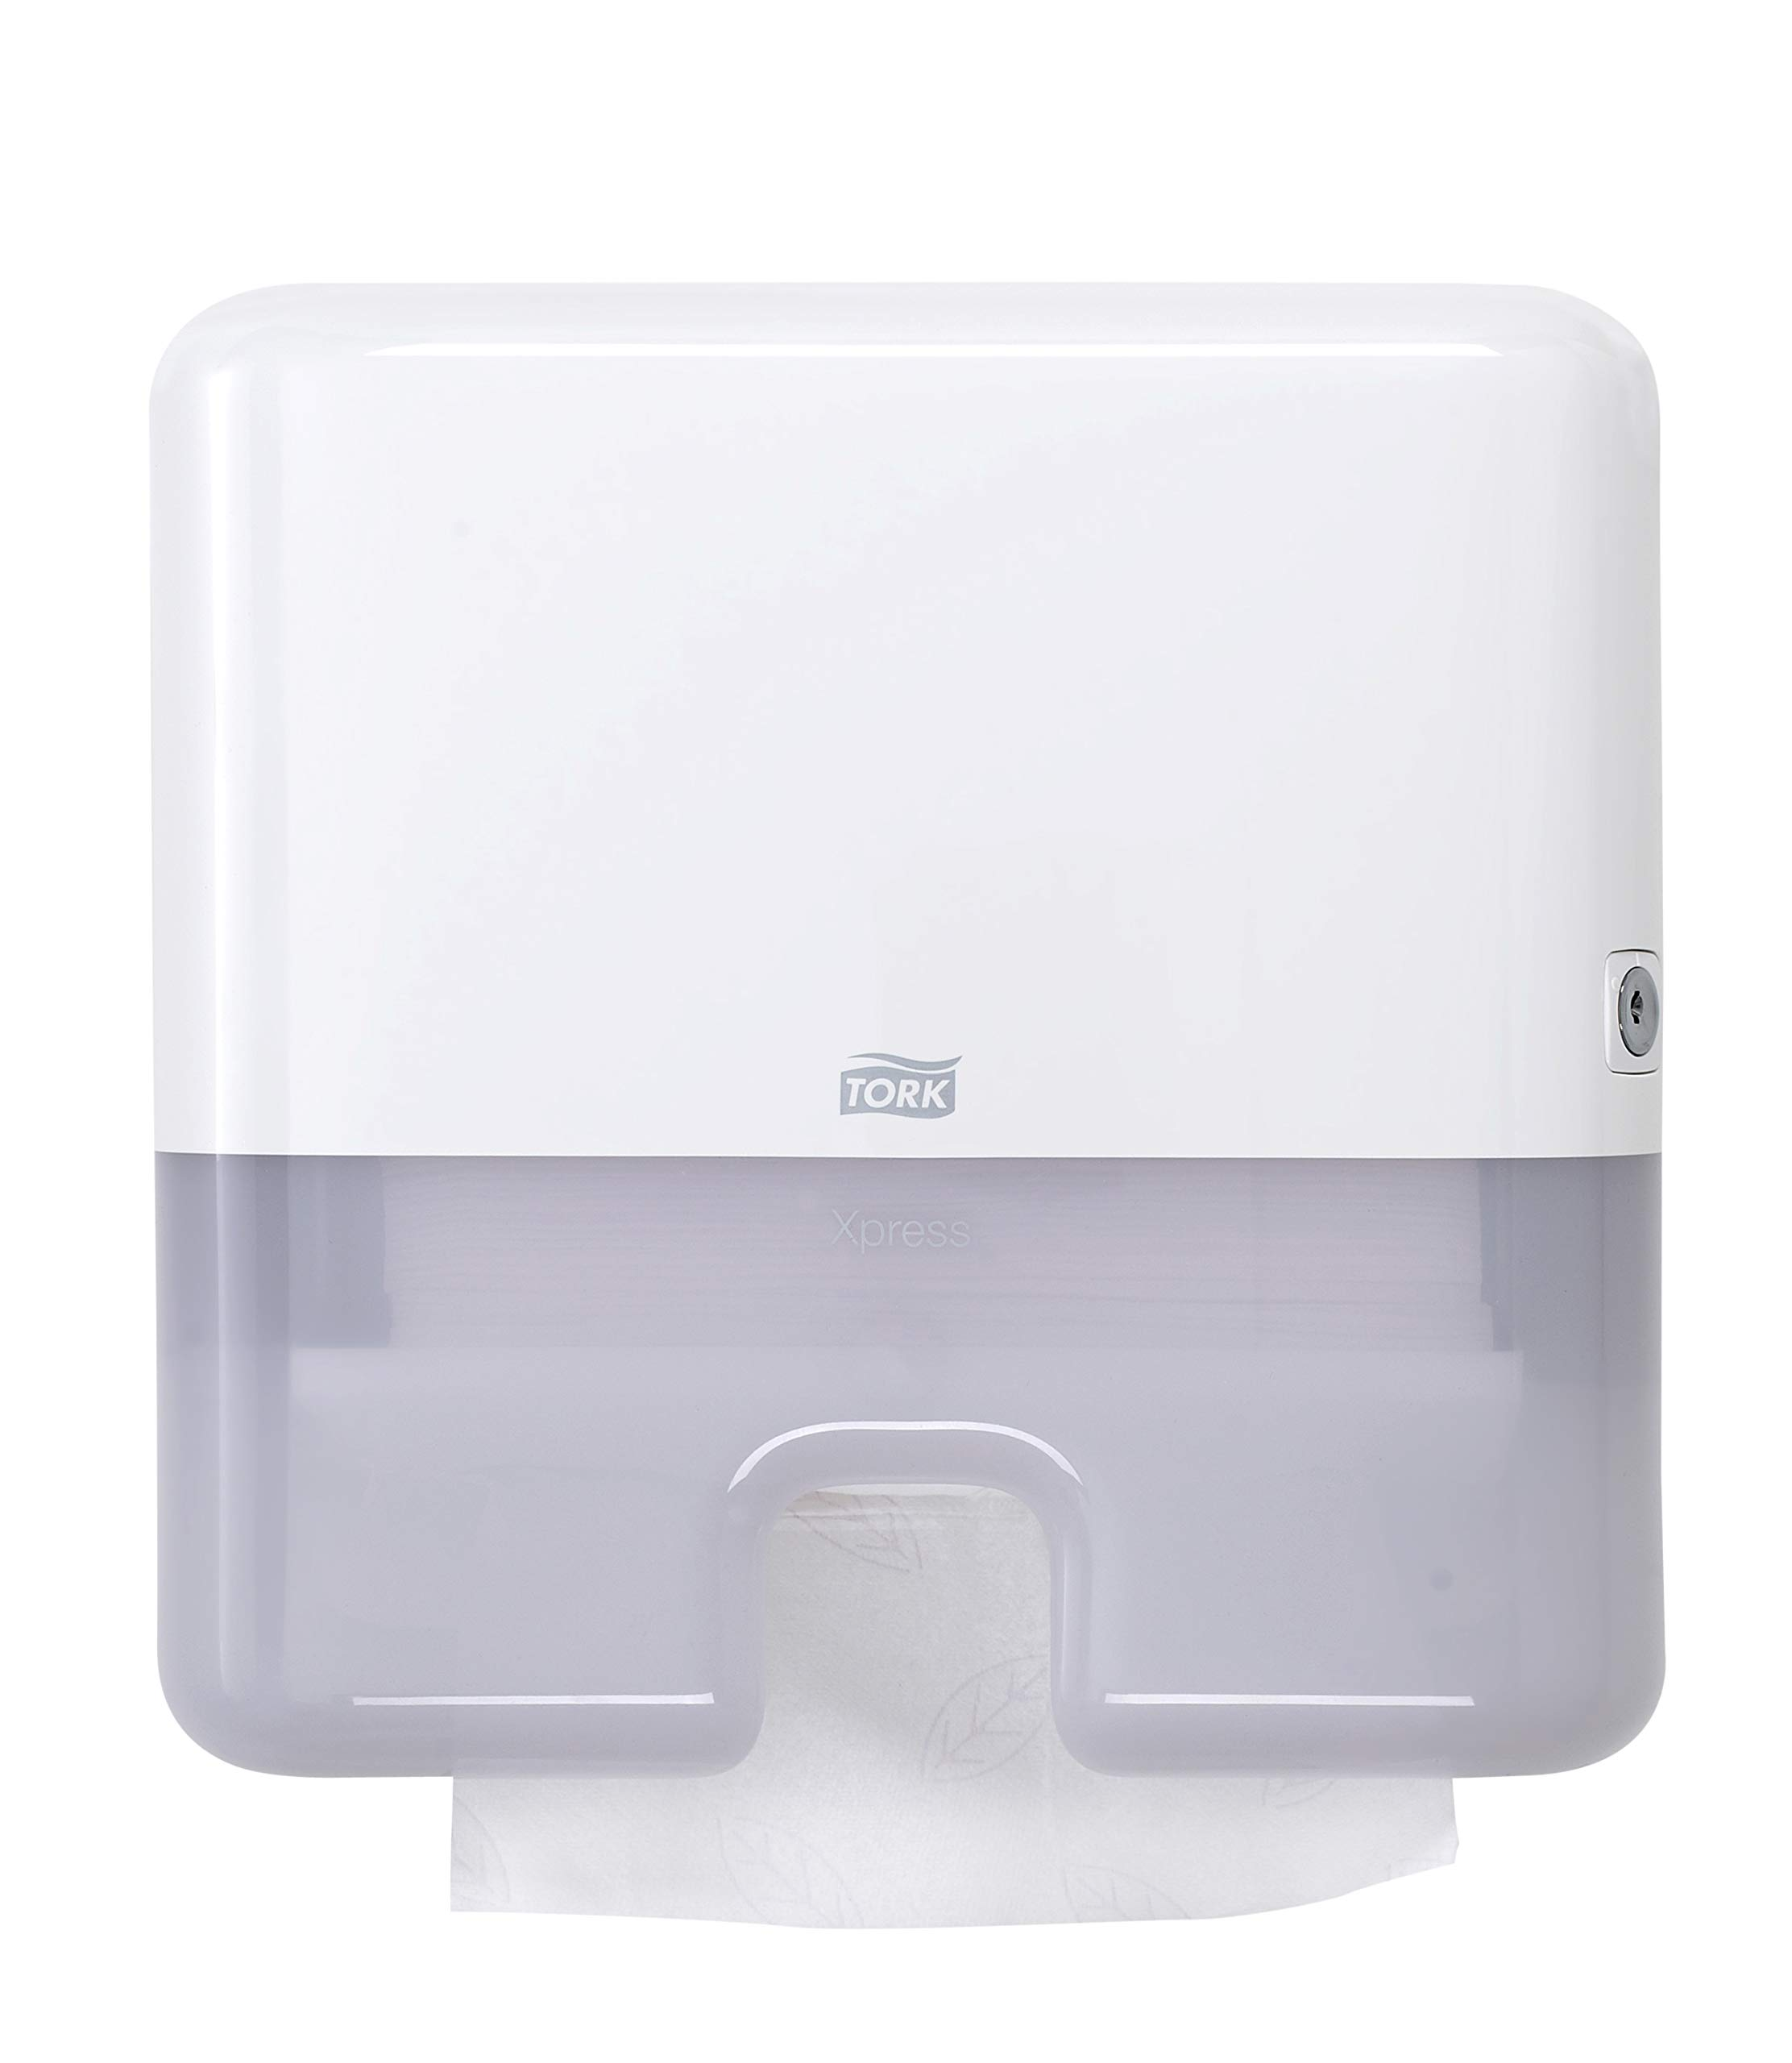 Tork 552120 Elevation Xpress Mini Hand Towel Dispenser, 11.6'' Height x 11.9'' Width x 4.0'' Depth, White (Case of 1 Dispenser) for use with Tork 100297, 420570, 101293, 424814 and 424864